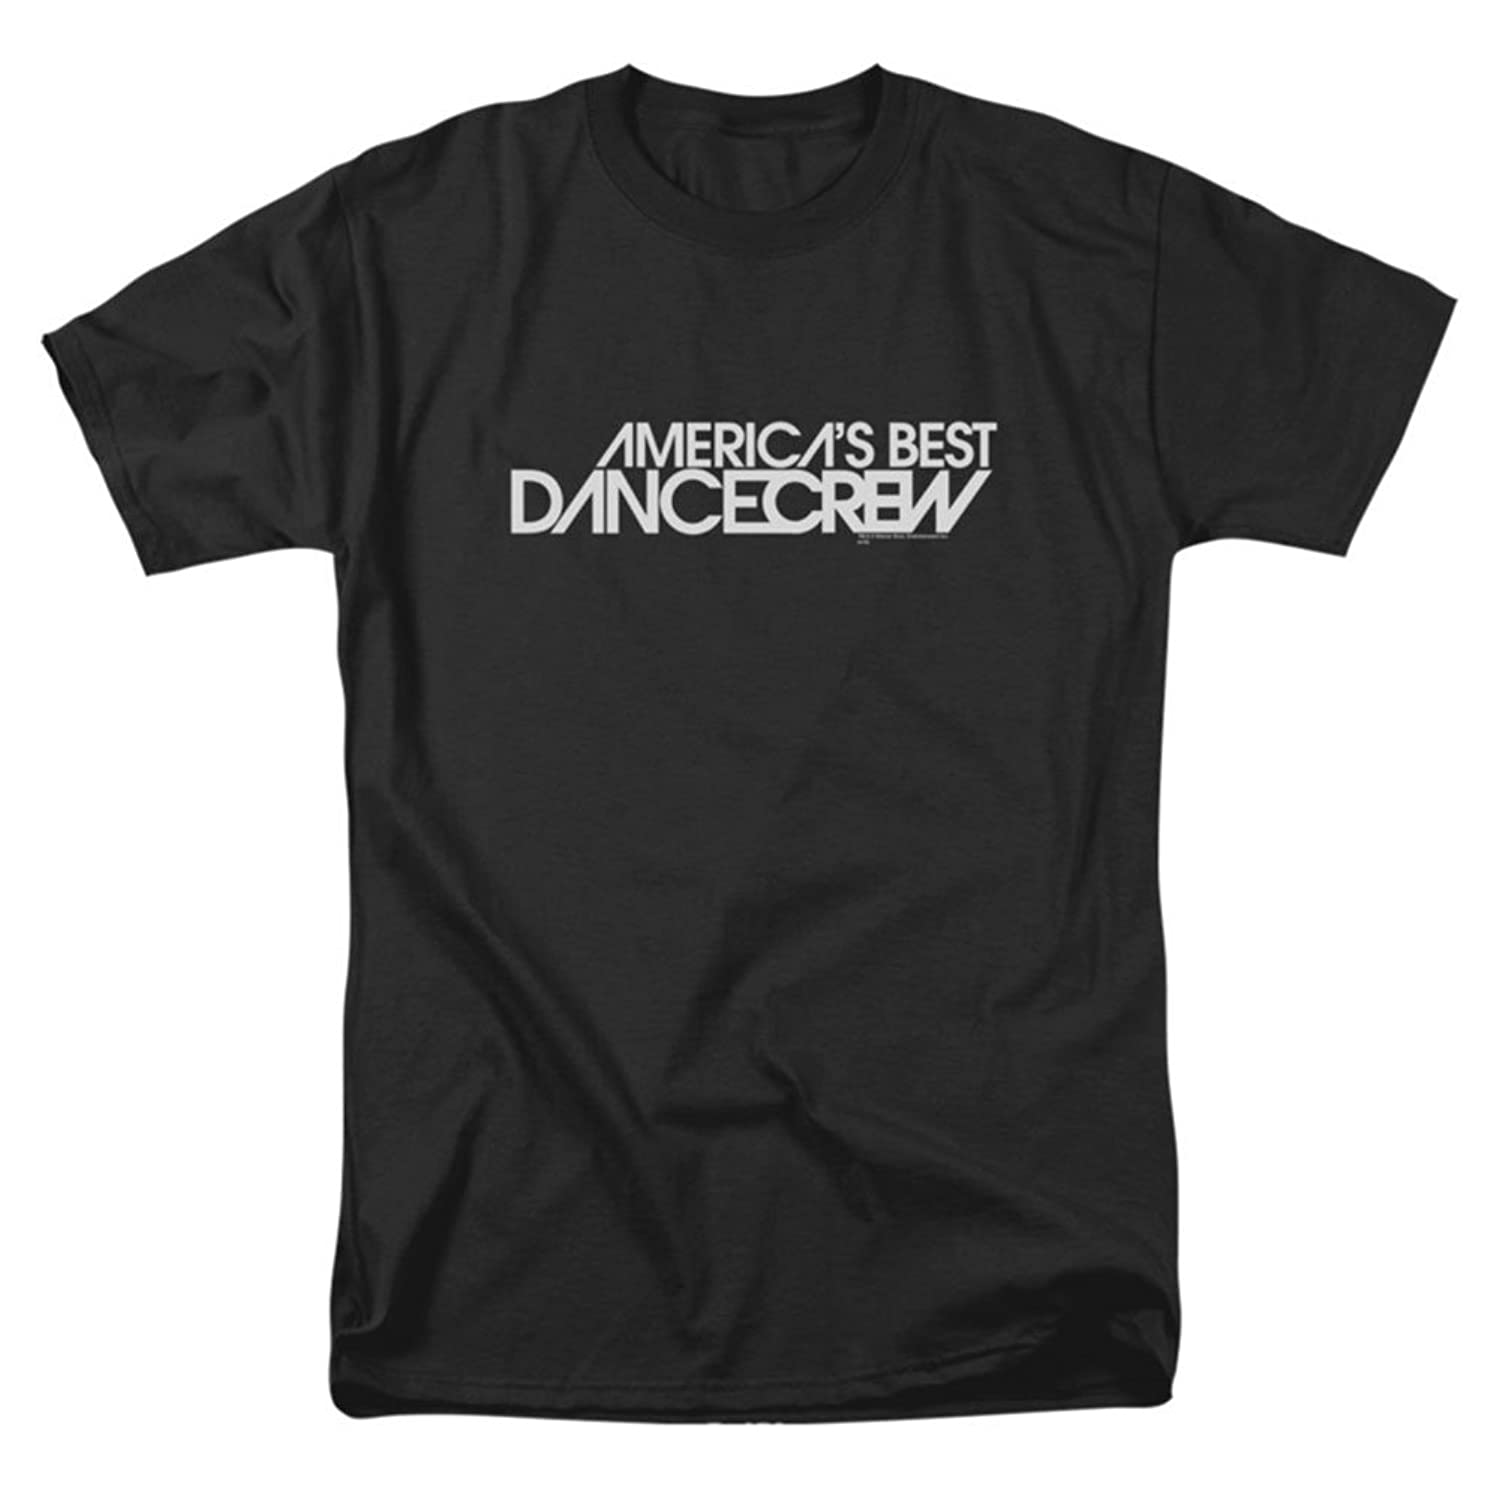 America'S Best Dance Crew - Mens Dance Crew Logo T-Shirt In Black